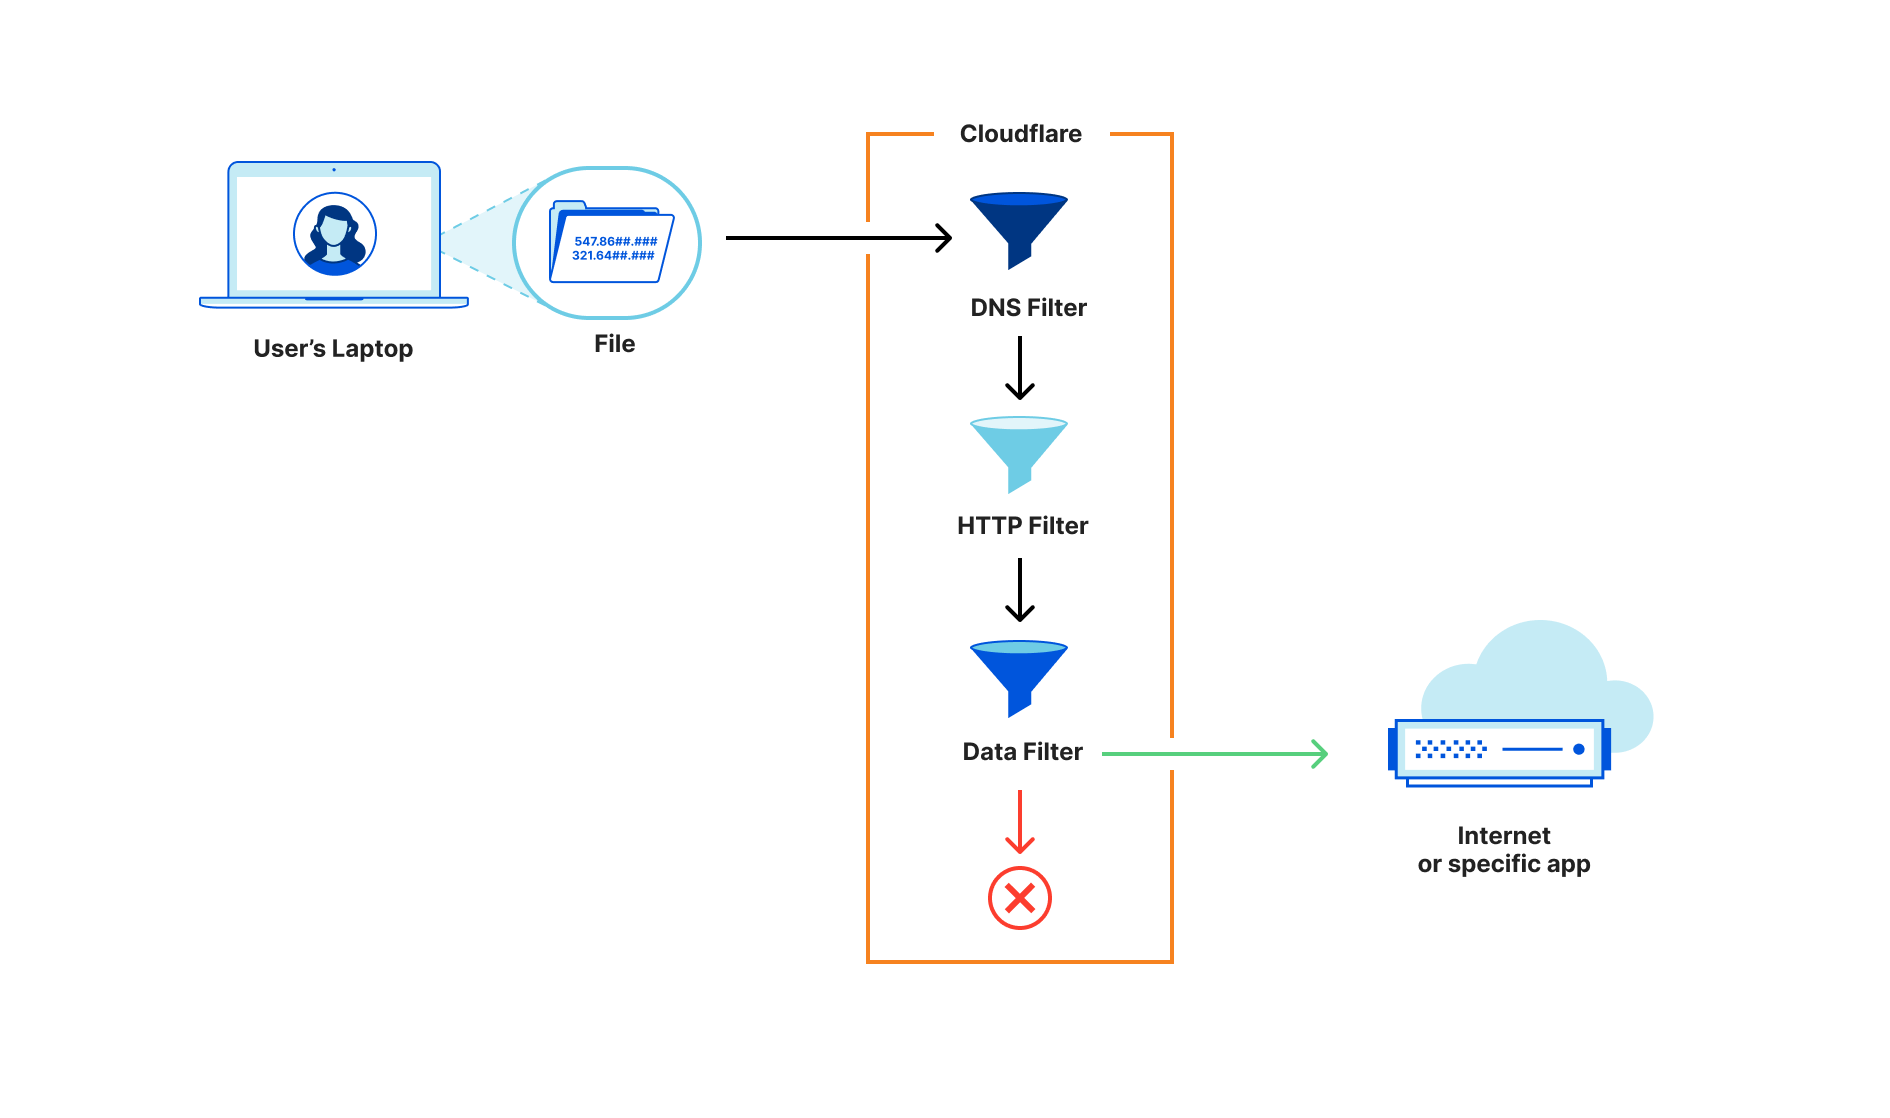 Cloudflare's DLP capabilities apply standard, consistent rules around what data can leave your organization regardless of how that traffic arrived in our network.